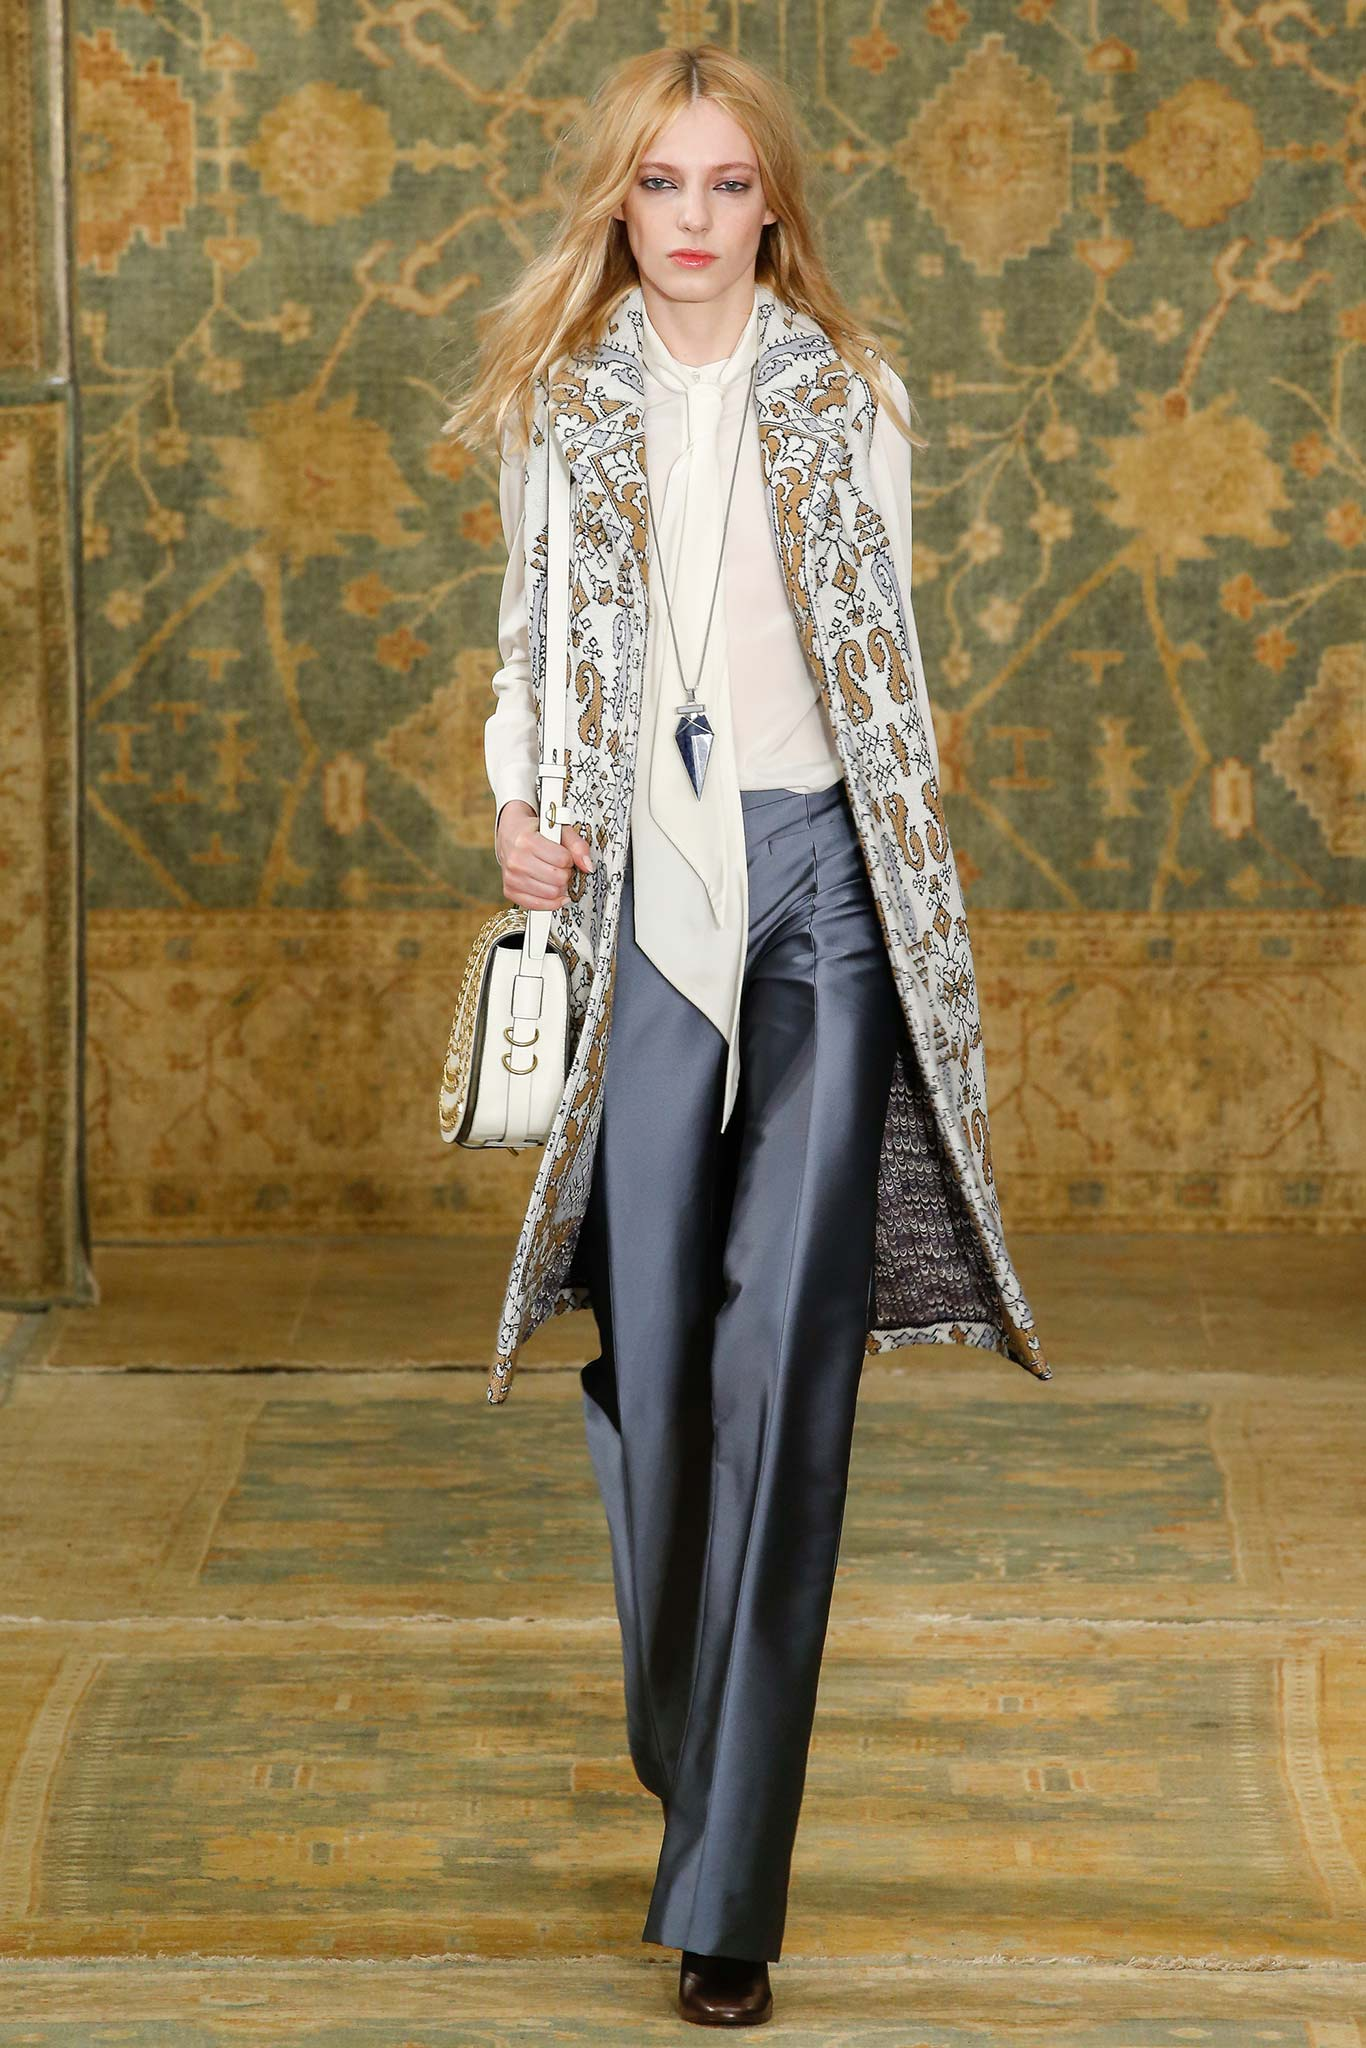 Trends-Spotted-At-New-York-Fashion-Week-For-Fall-Winter-2015-2016-2